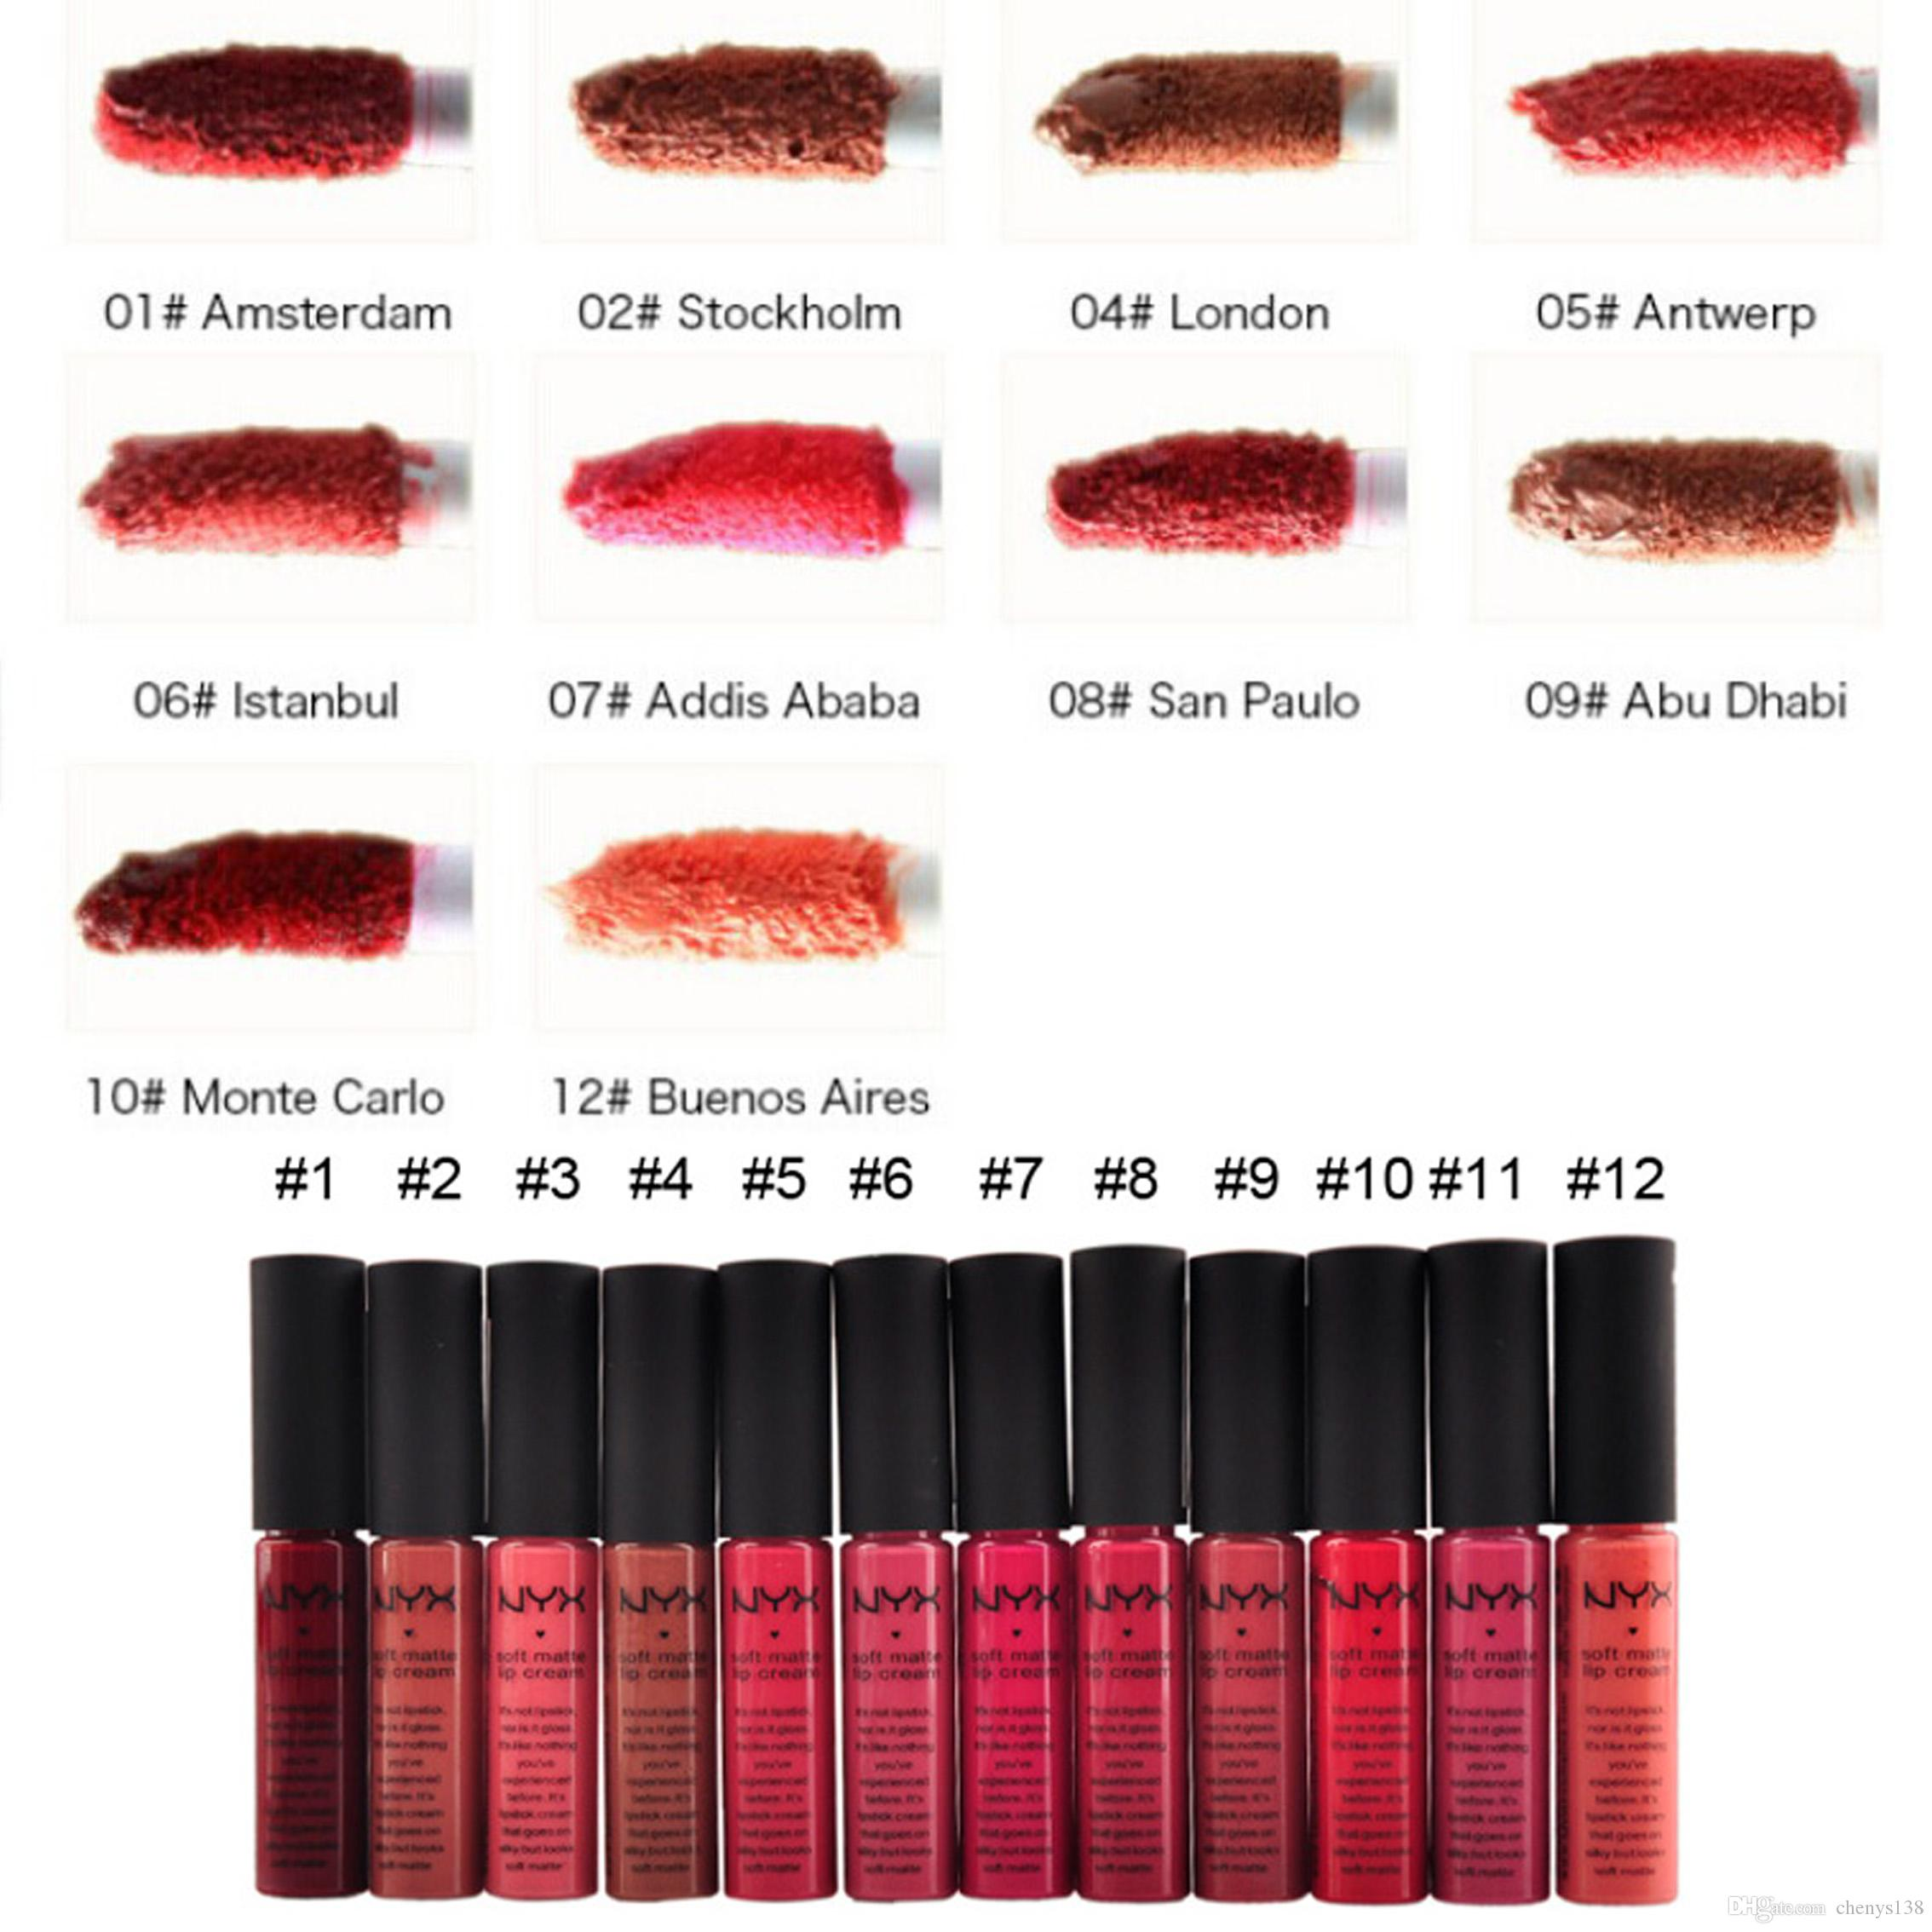 Soft Matte Lip Cream Nyx Stockholm T All Variant Gloss Long Lasting Lipstick Professional Makeup Tool Vintage Cheap Free Samples From Chenys138